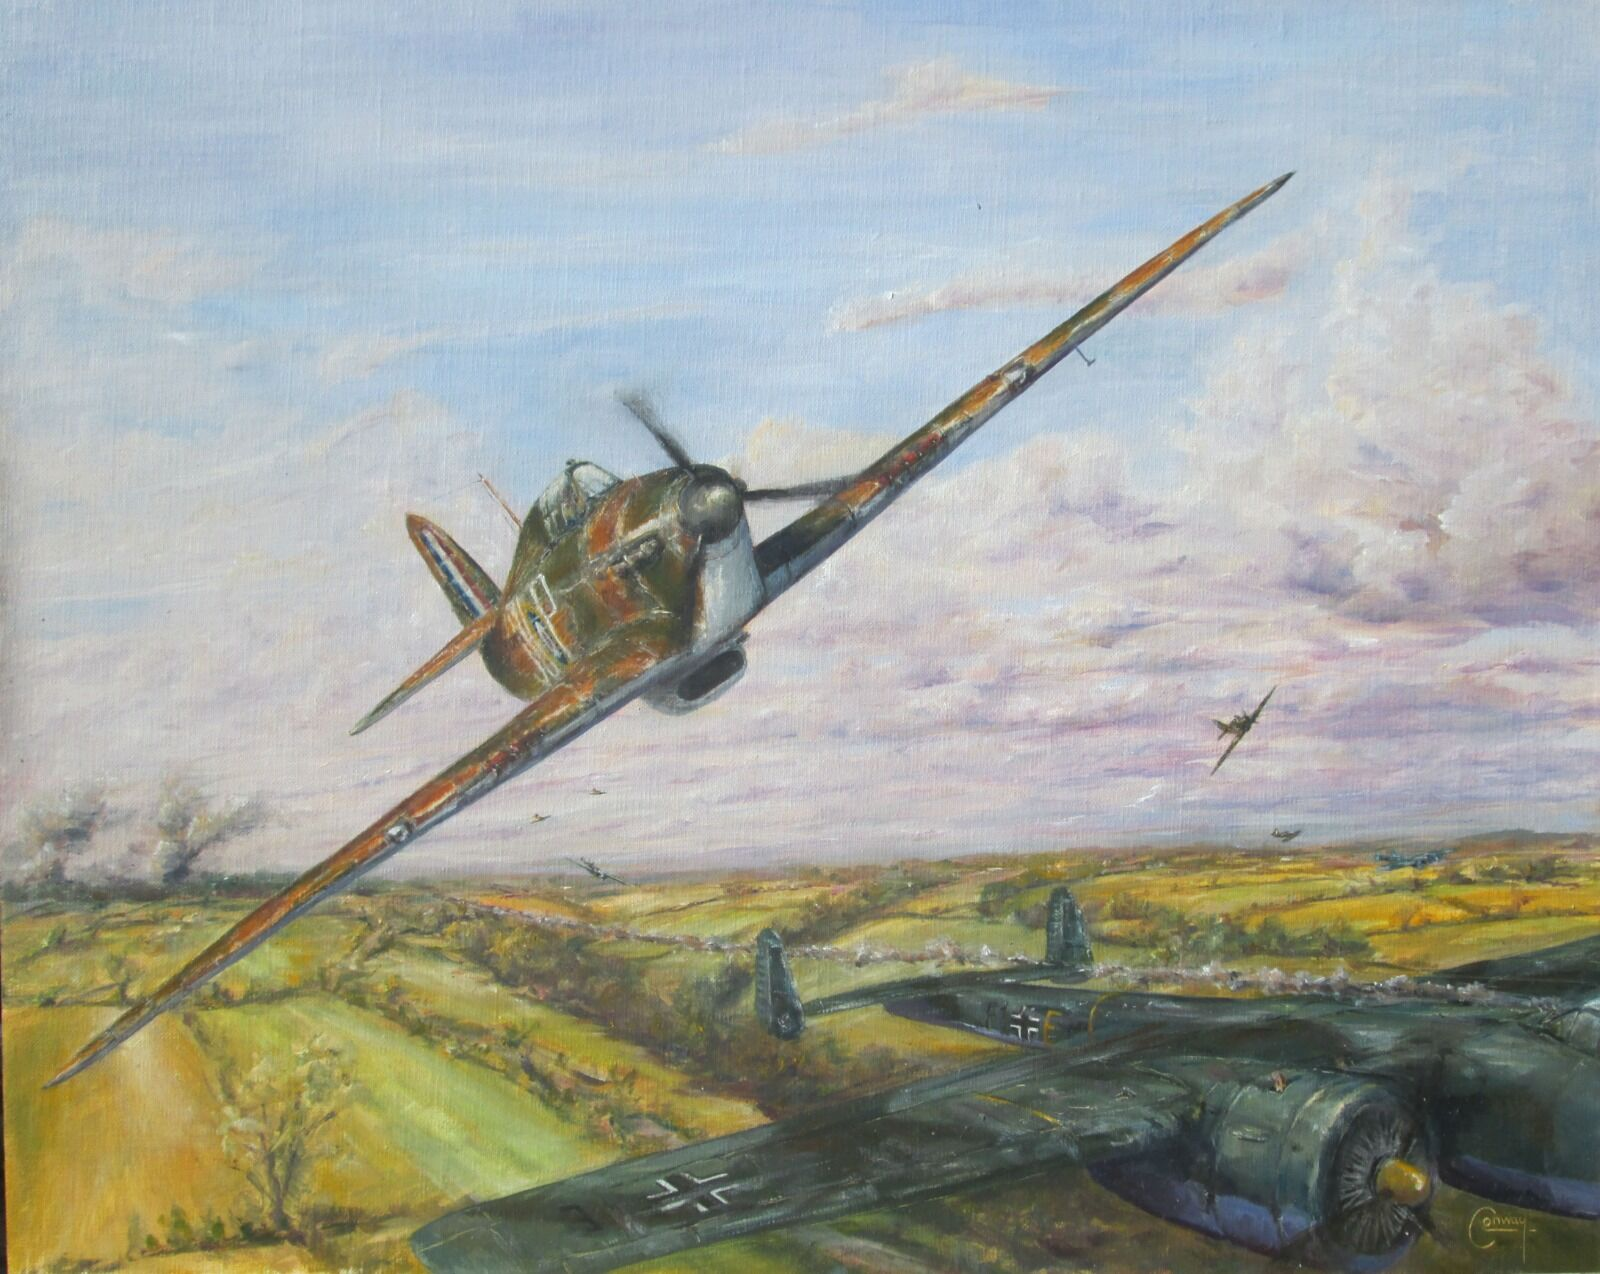 'Stirring up the Hornets' Nest'- Hurricanes of 'Treble One', No. 111 Squadron